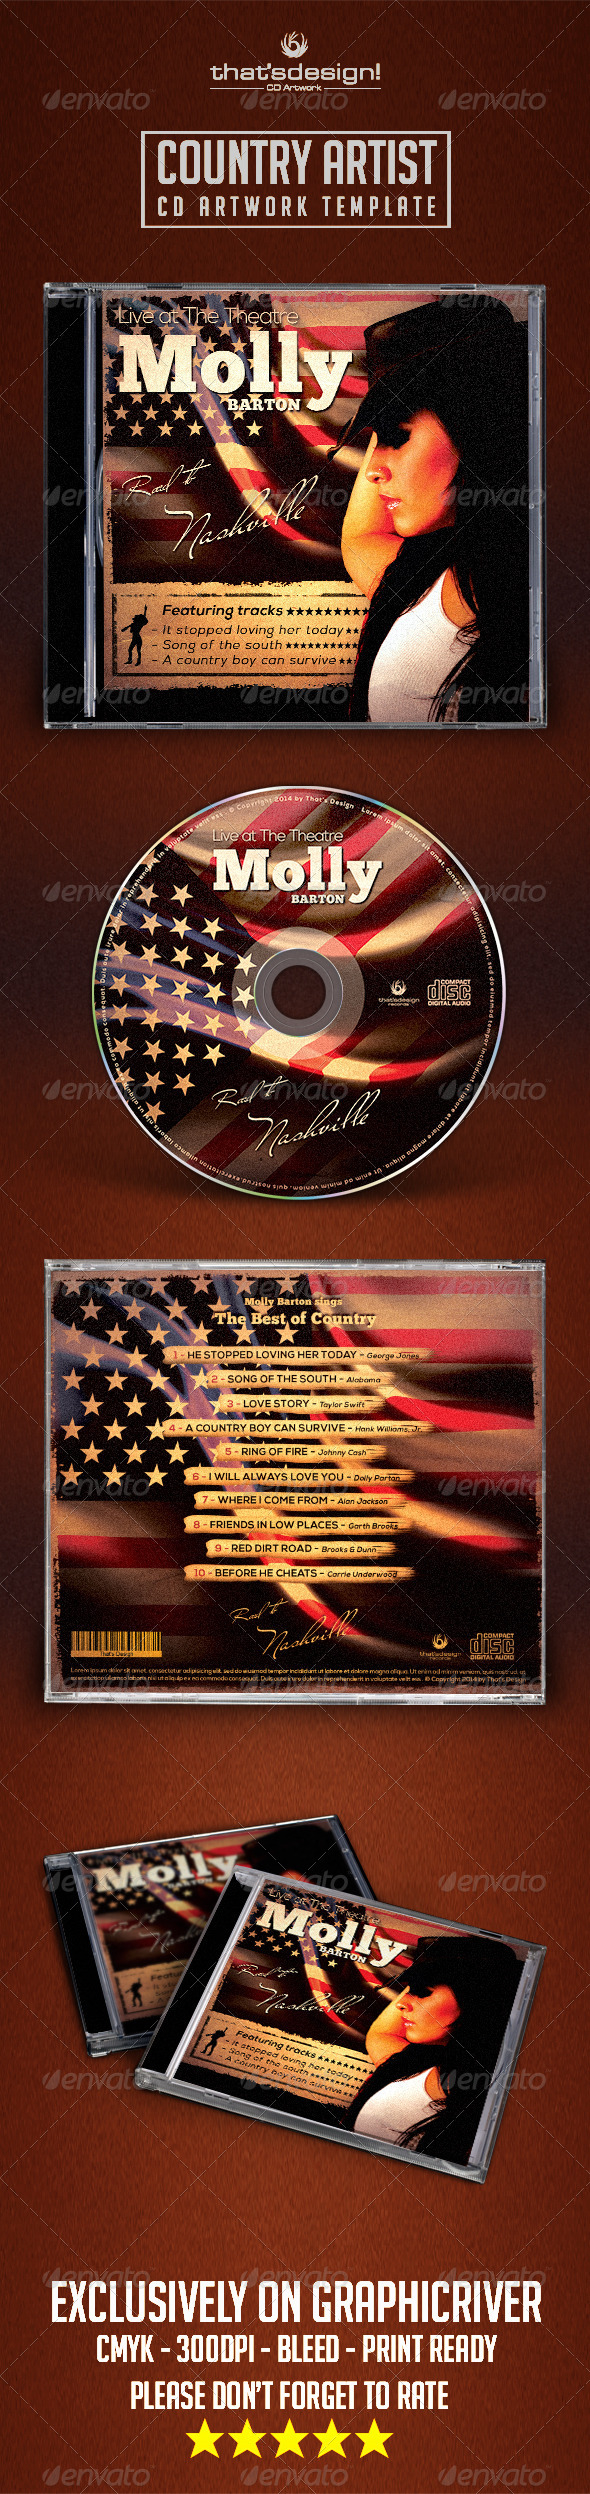 GraphicRiver Country CD Album Artwork Template 8018536